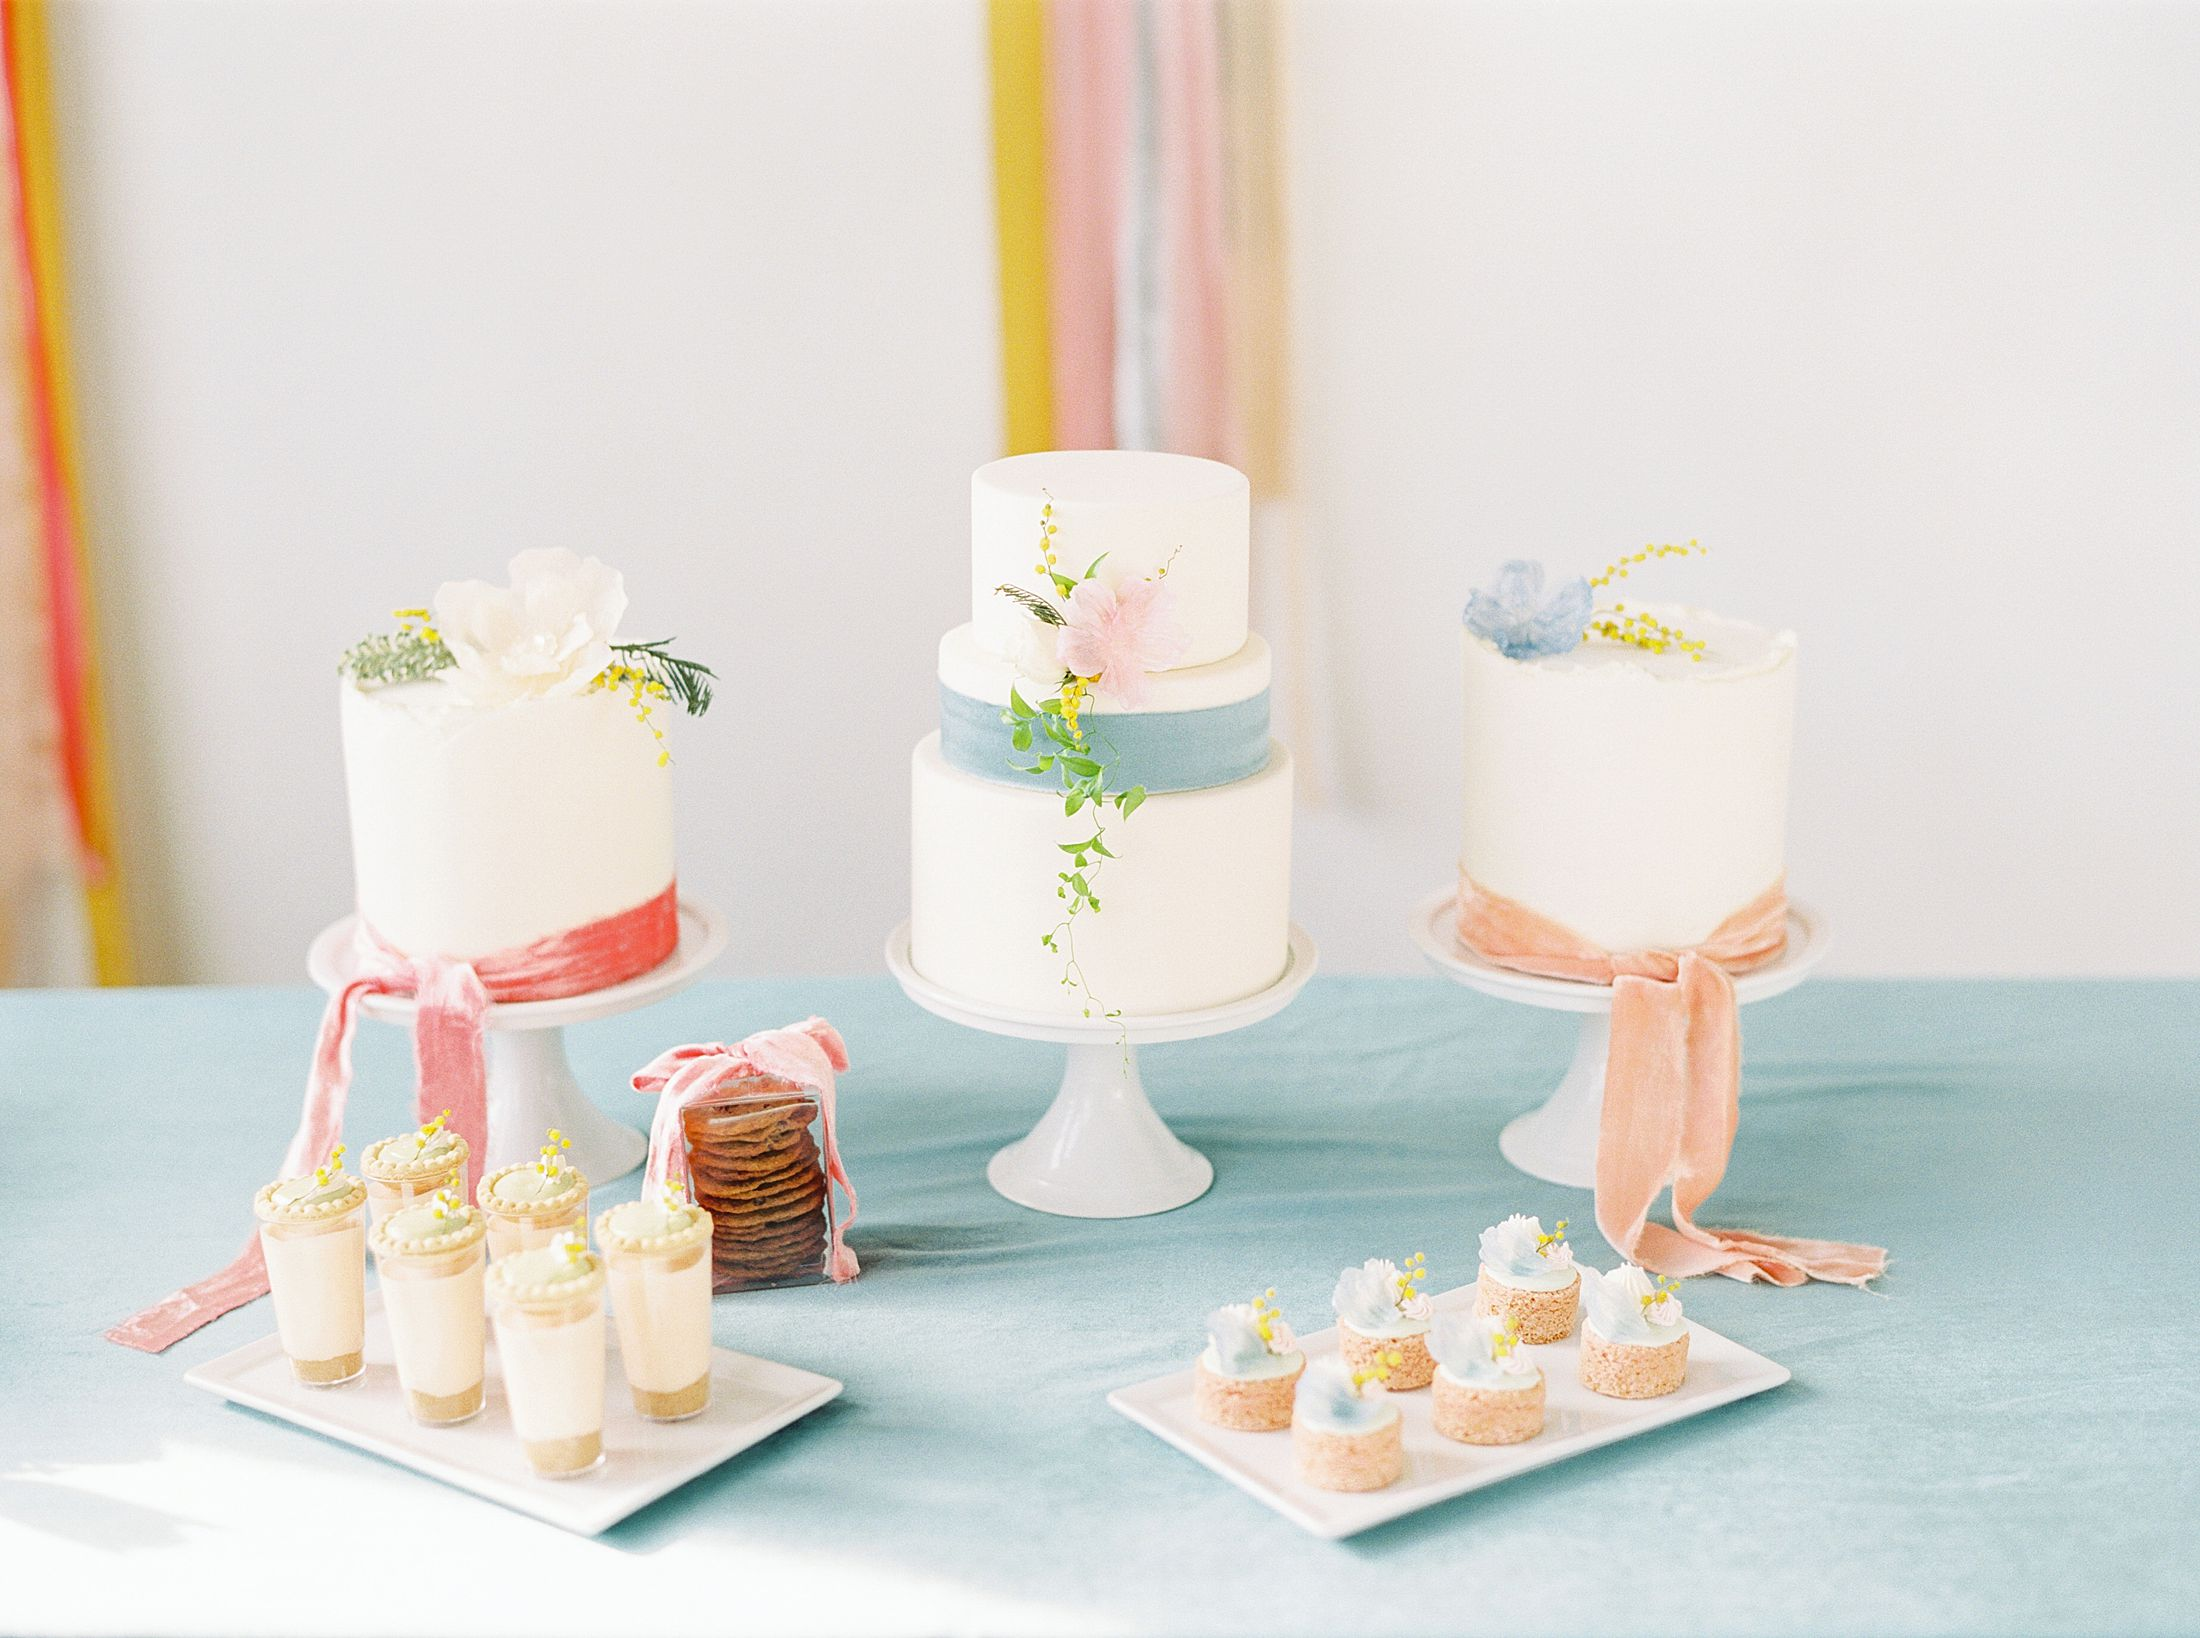 Bay Area Spring Wedding Inspiration - Ashley Baumgartner - Inspired By This - Party Crush Studio and Lens of Lenox Videography - Bay Area Wedding Photography_0064.jpg